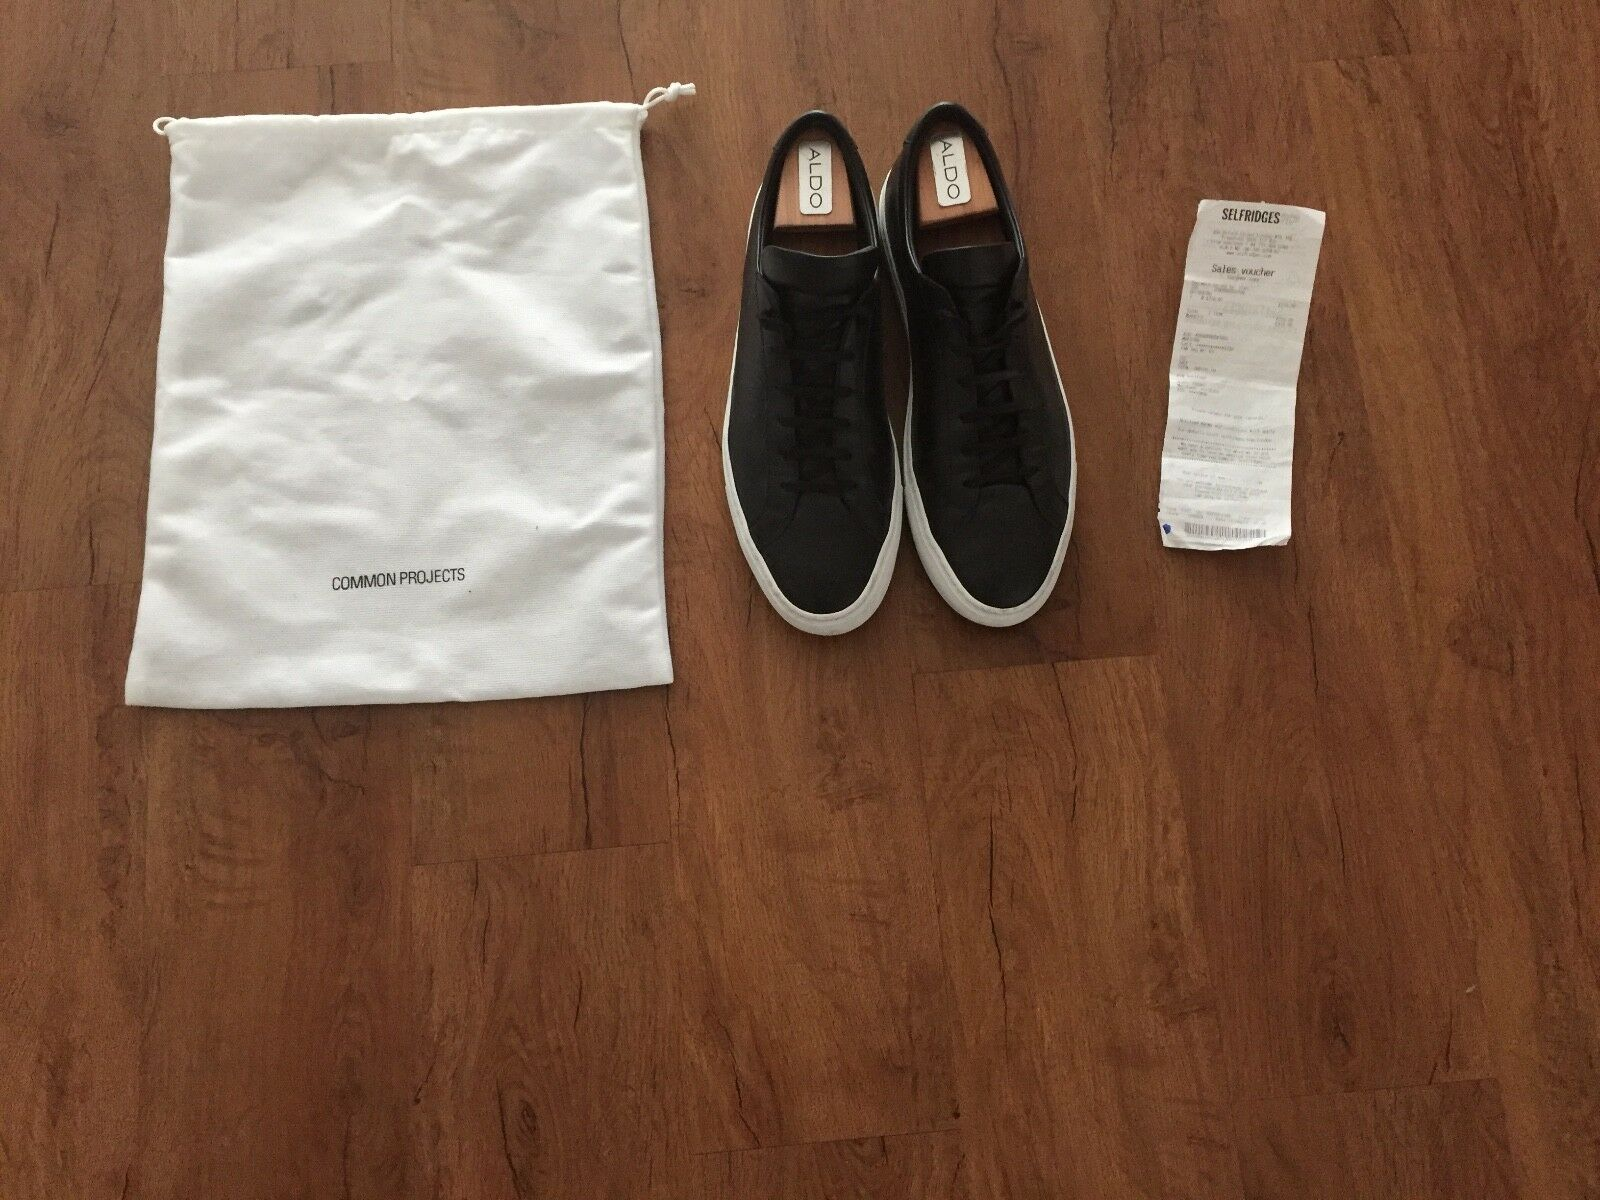 Billig gute Qualität Common Projects Leder Sneakers